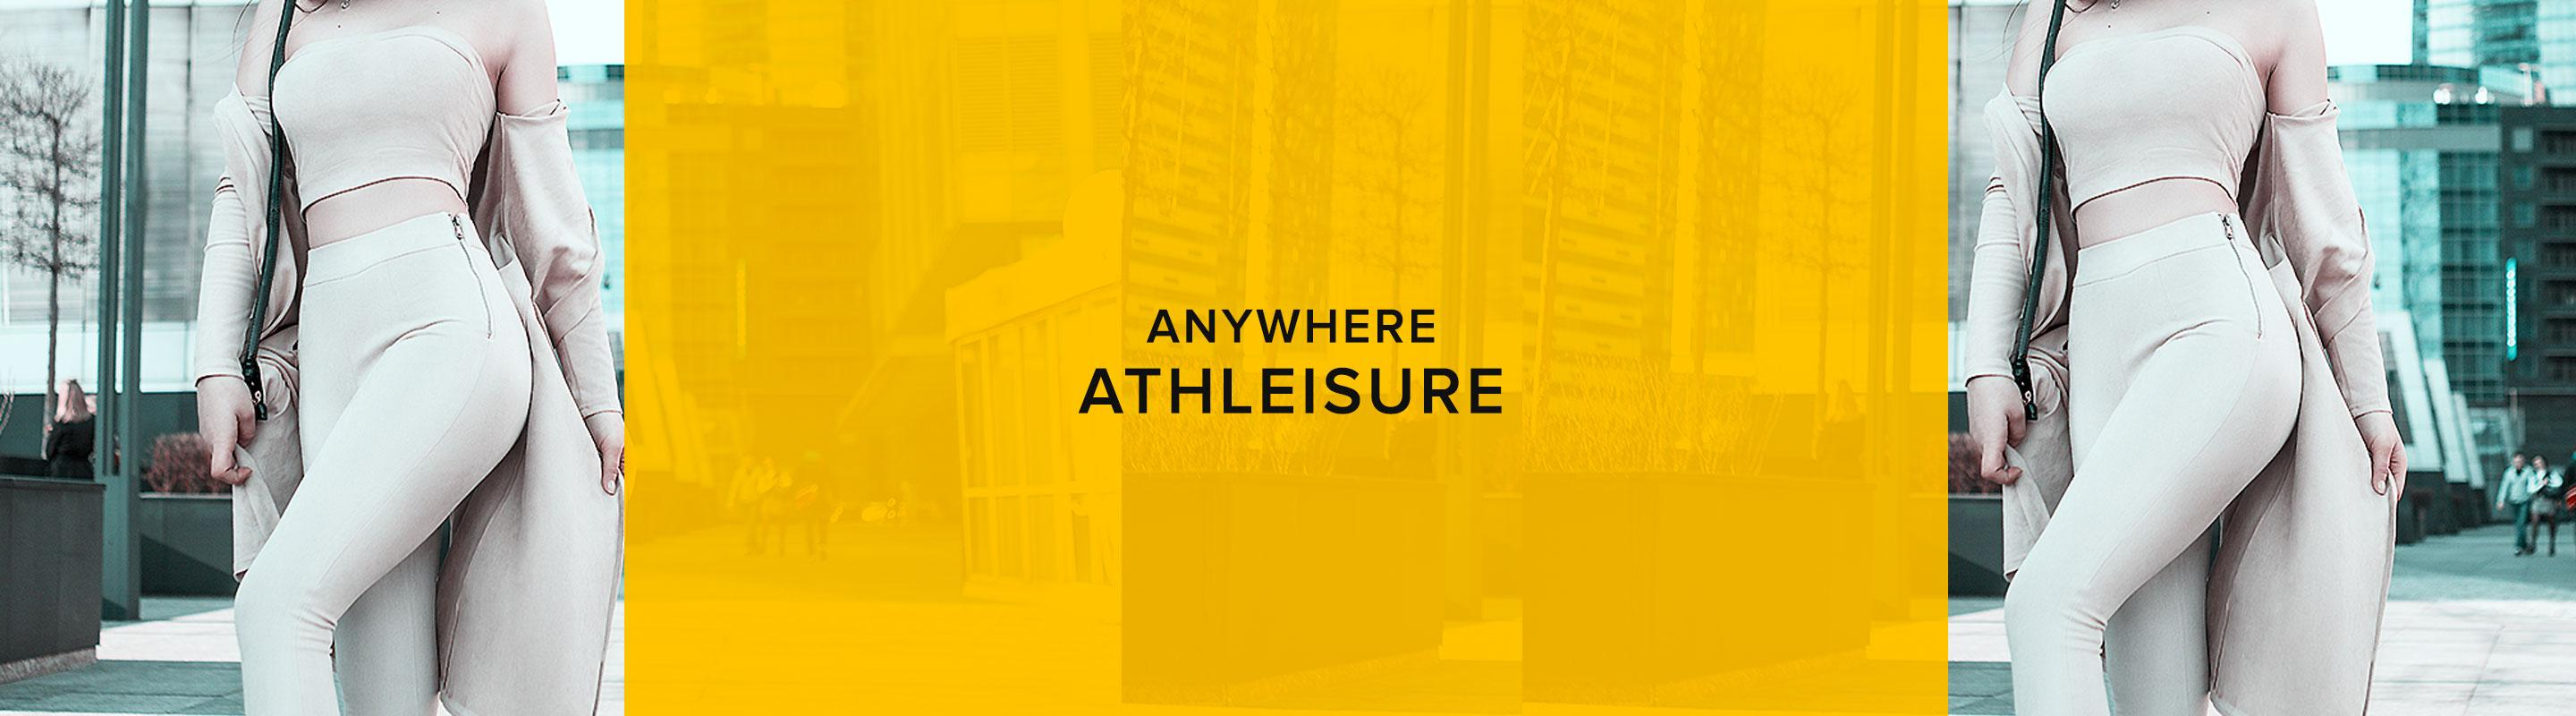 Anywhere Athleisure